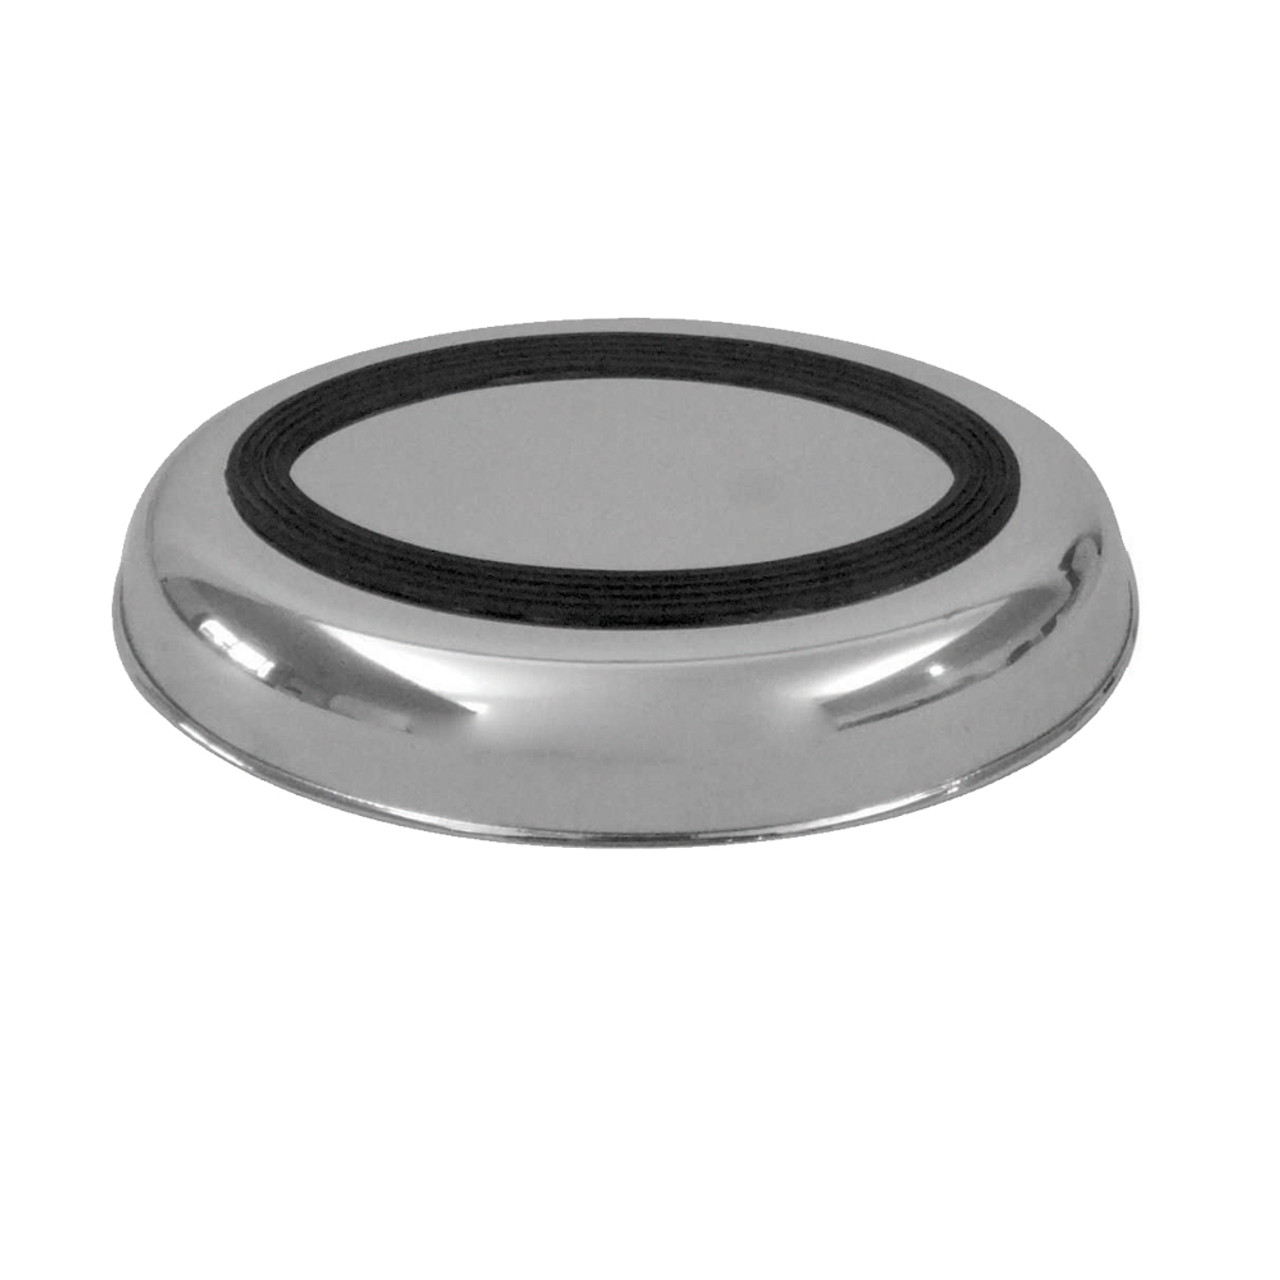 Dineasty Stainless Steel Oval Cat Bowl